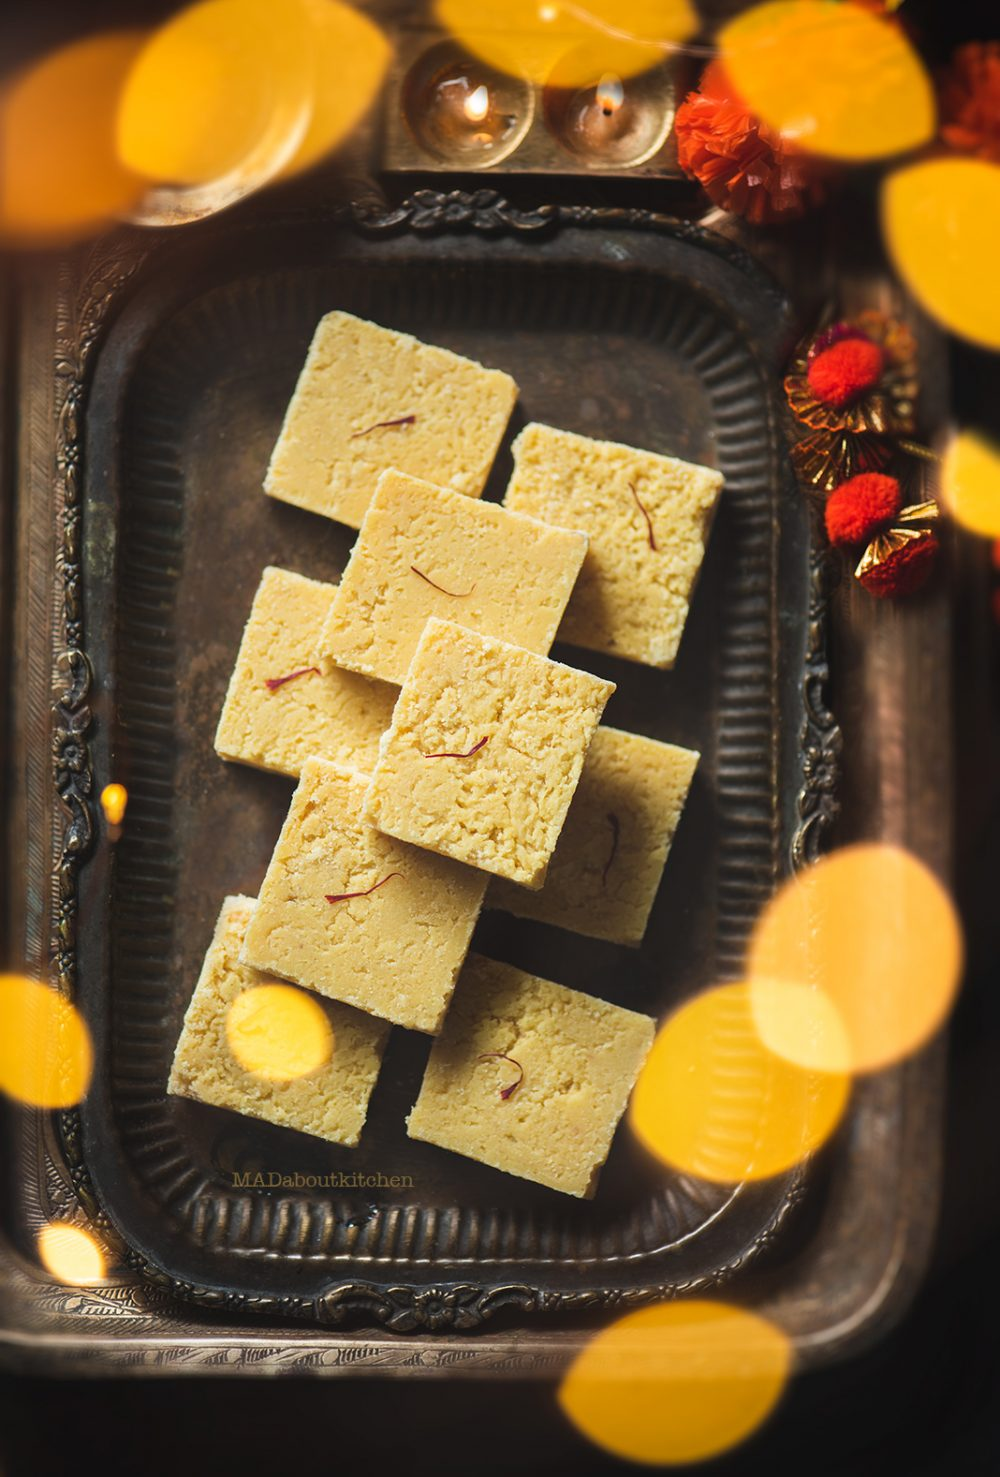 7 cups barfi is made using 7 cups of ingredients using Besan.Besan mithai is a simple, easy mithai to make for any festival.